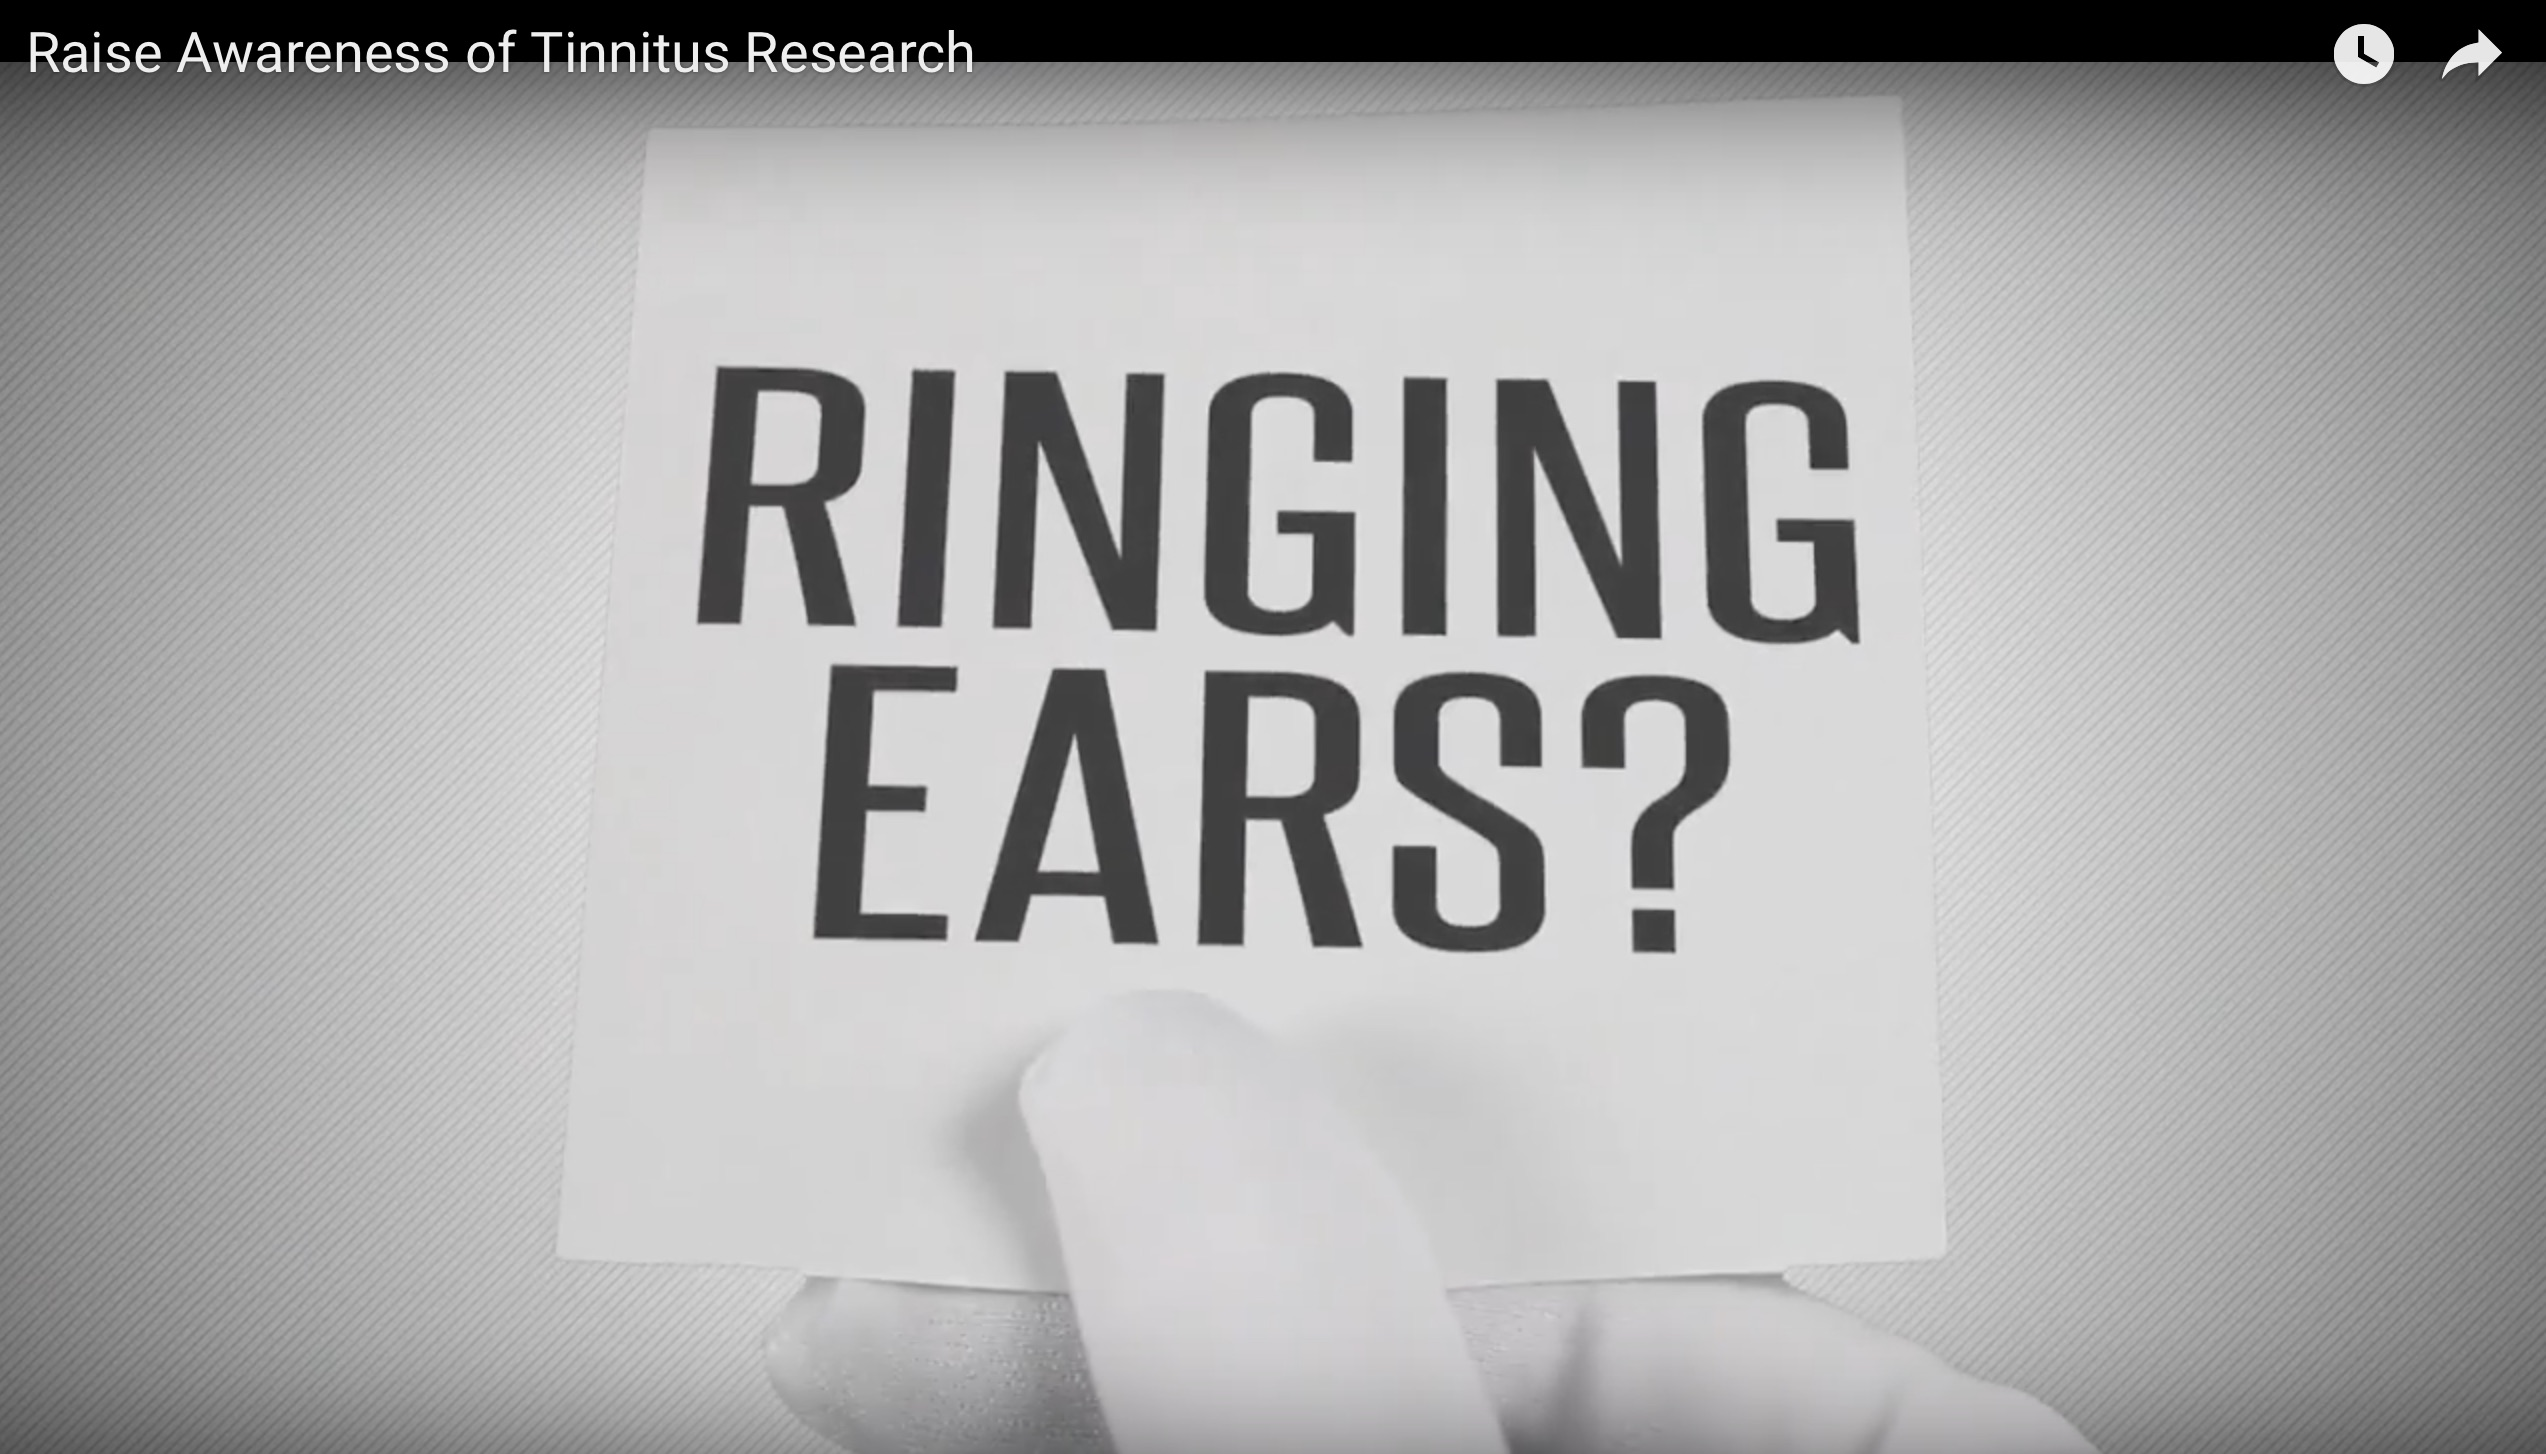 Tinnitus Awareness Video